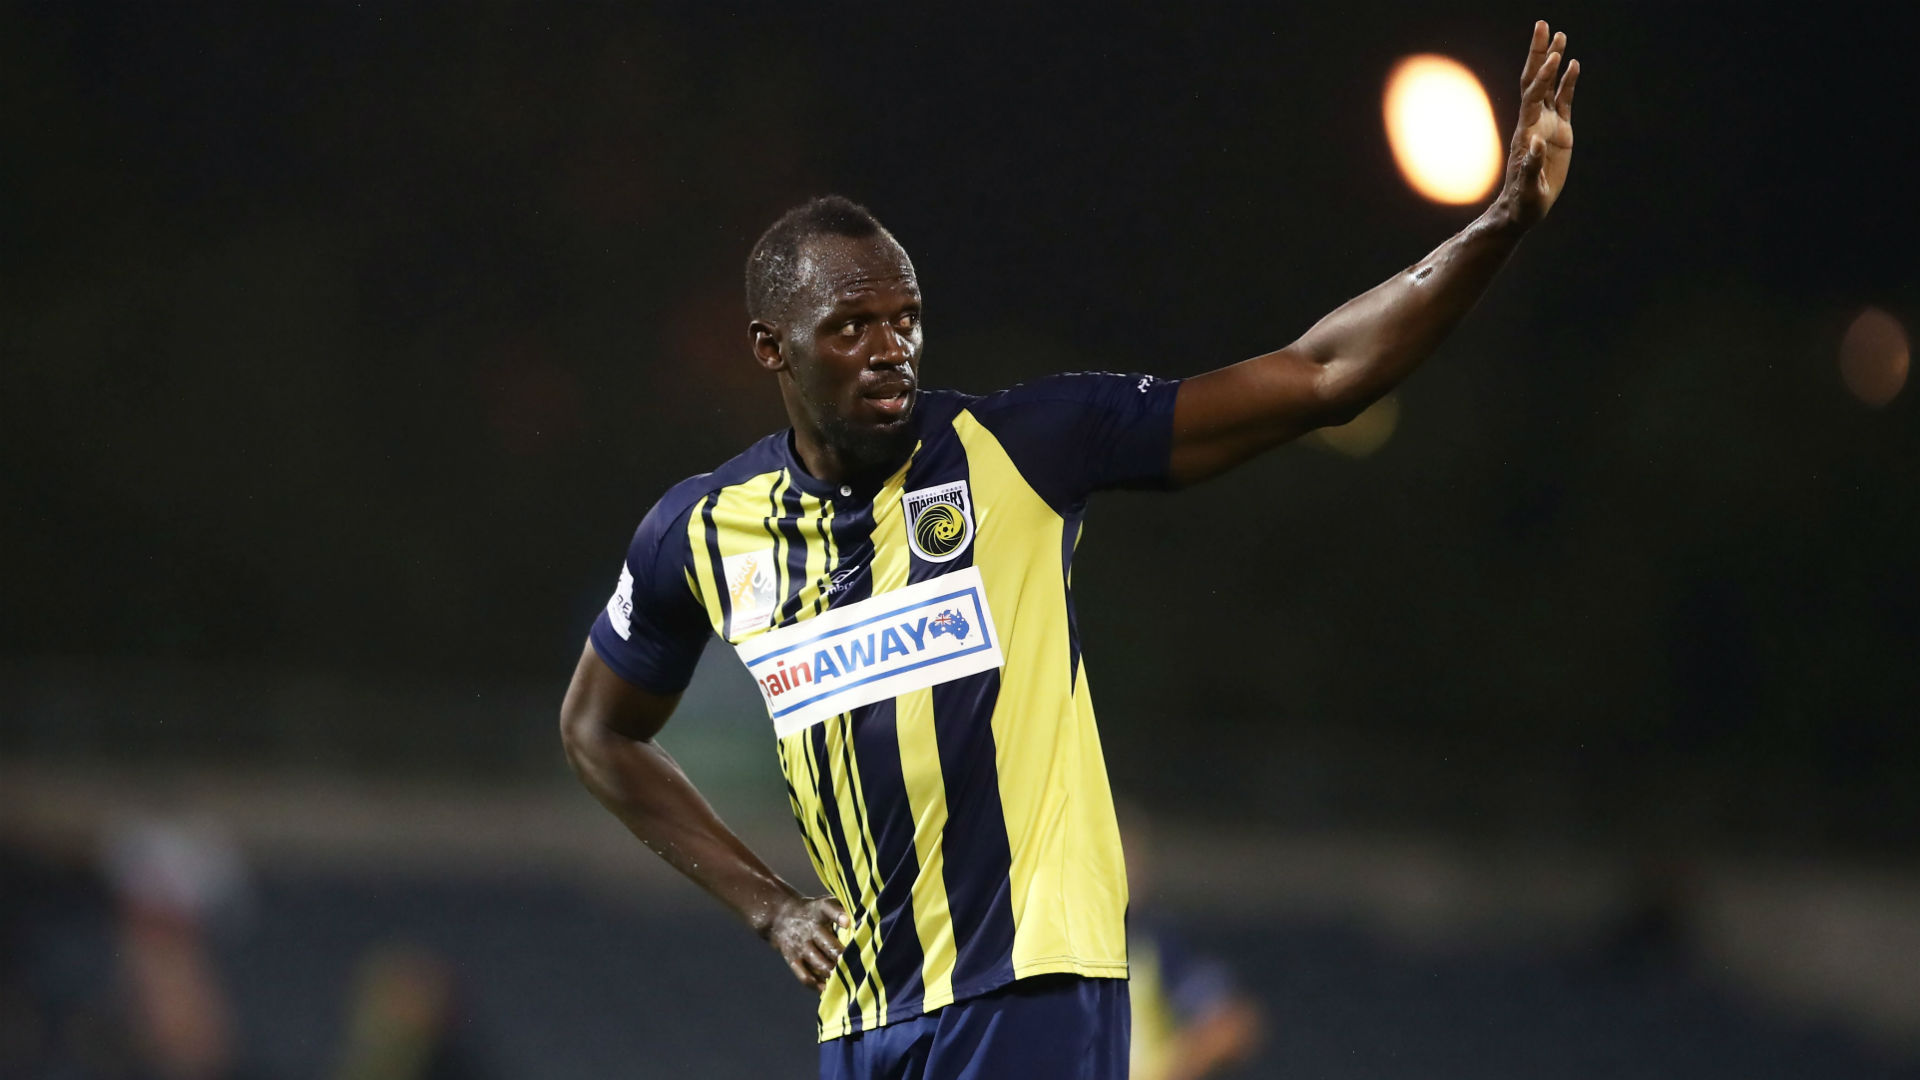 Valletta FC offer two-year contract to Usain Bolt